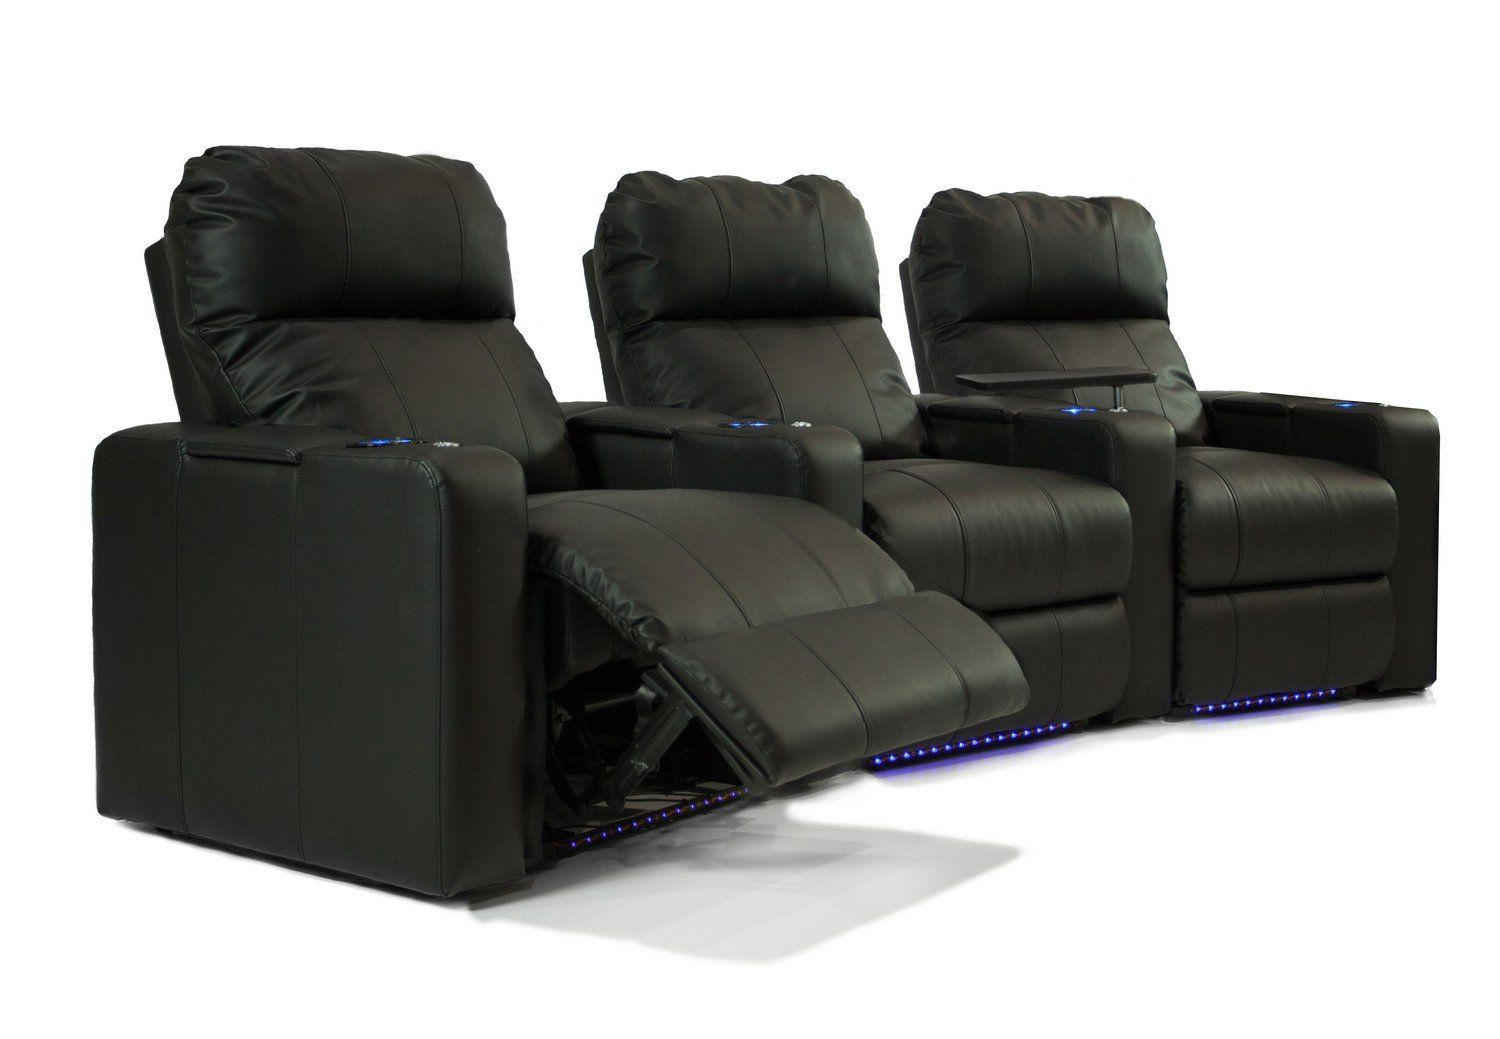 octane turbo xl700 row of 3 seats curved row in black bonded leather rh pintower com